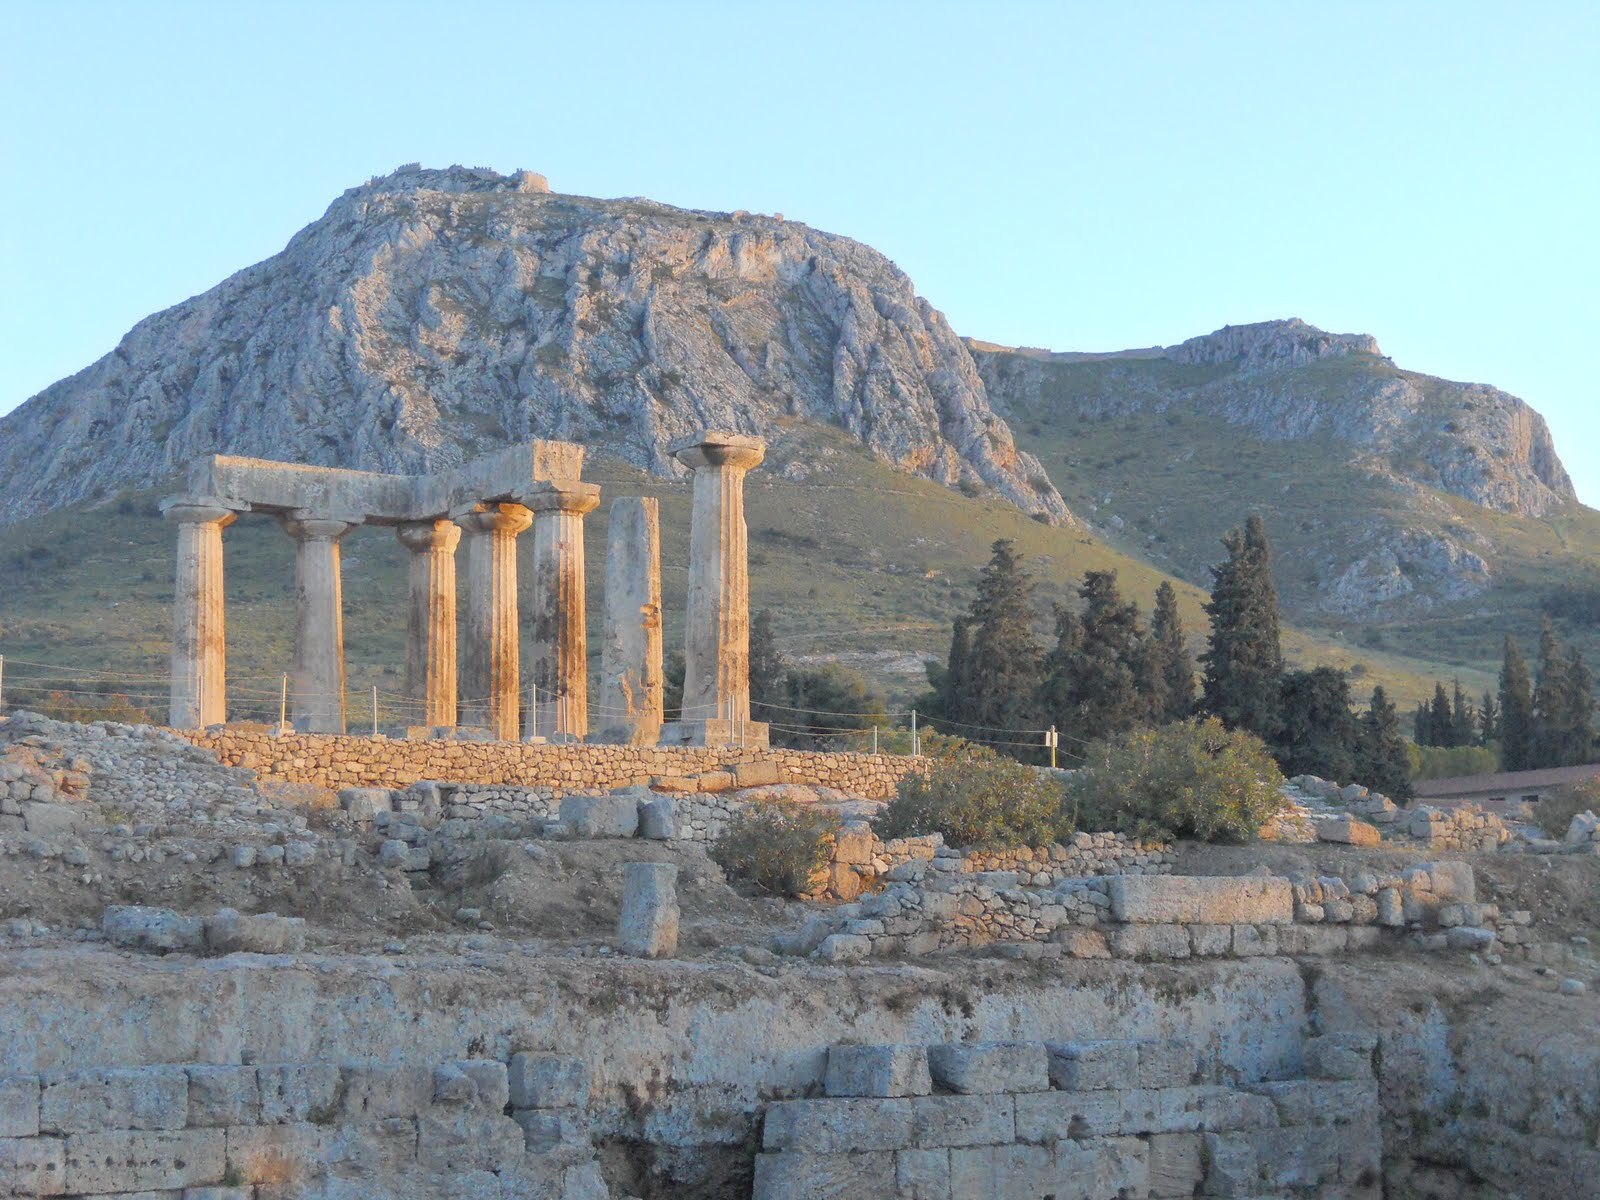 An Account of My Travels: Corinth and Onward